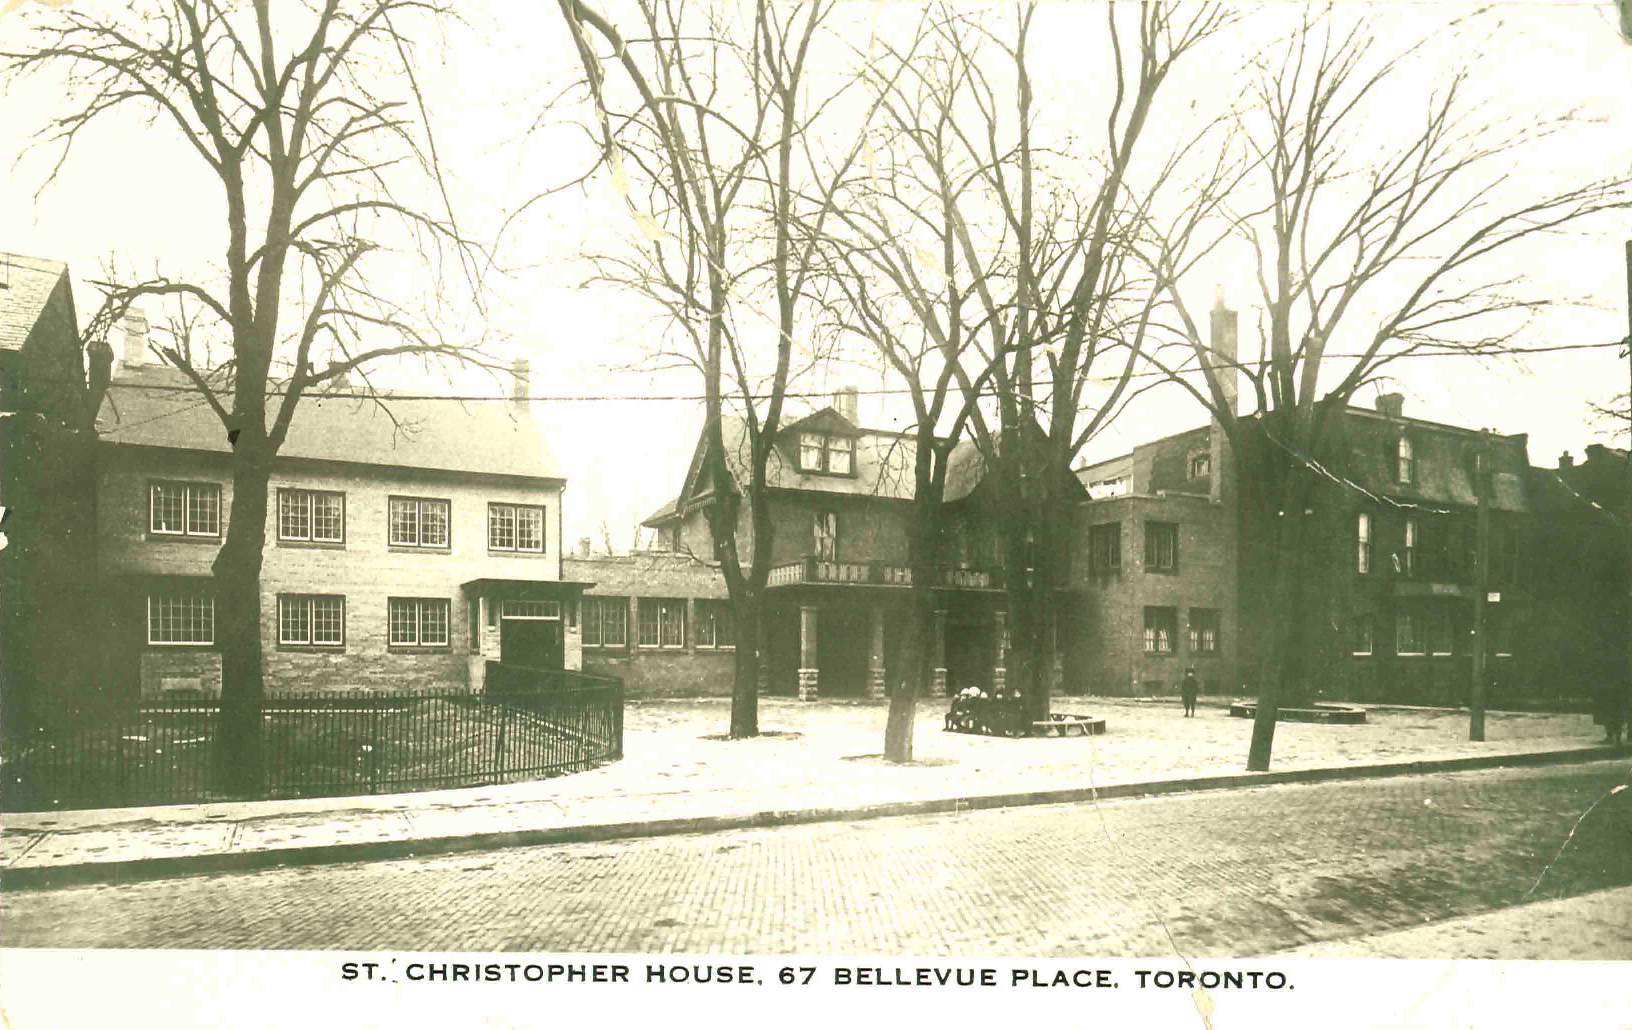 St. Christopher House at 67 Bellevue Place